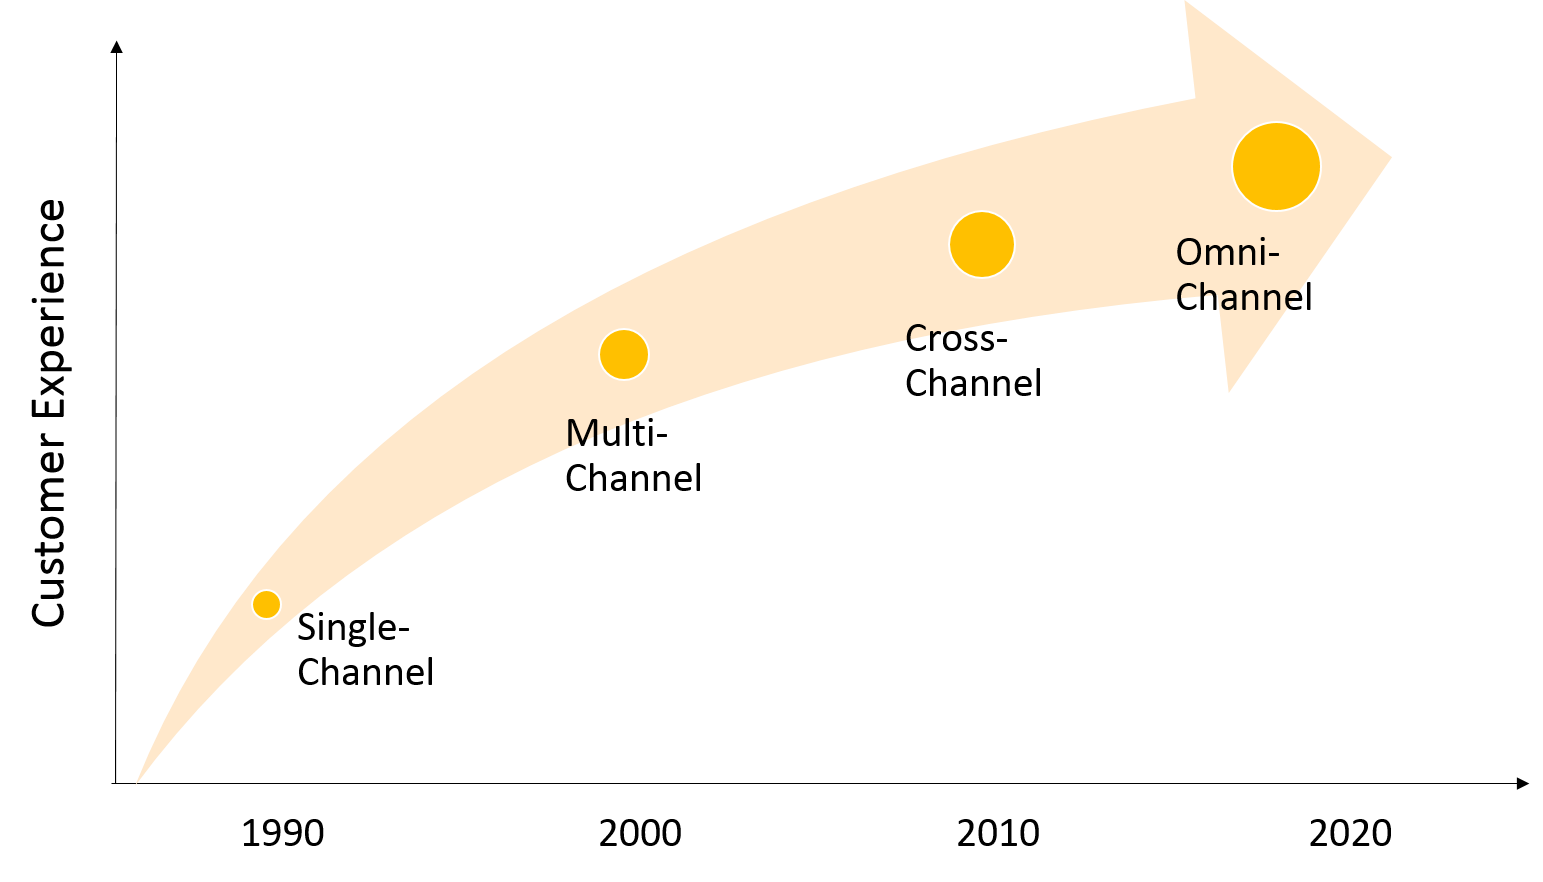 Von Multi-Channel über Cross-Channel zum Omni-Channel